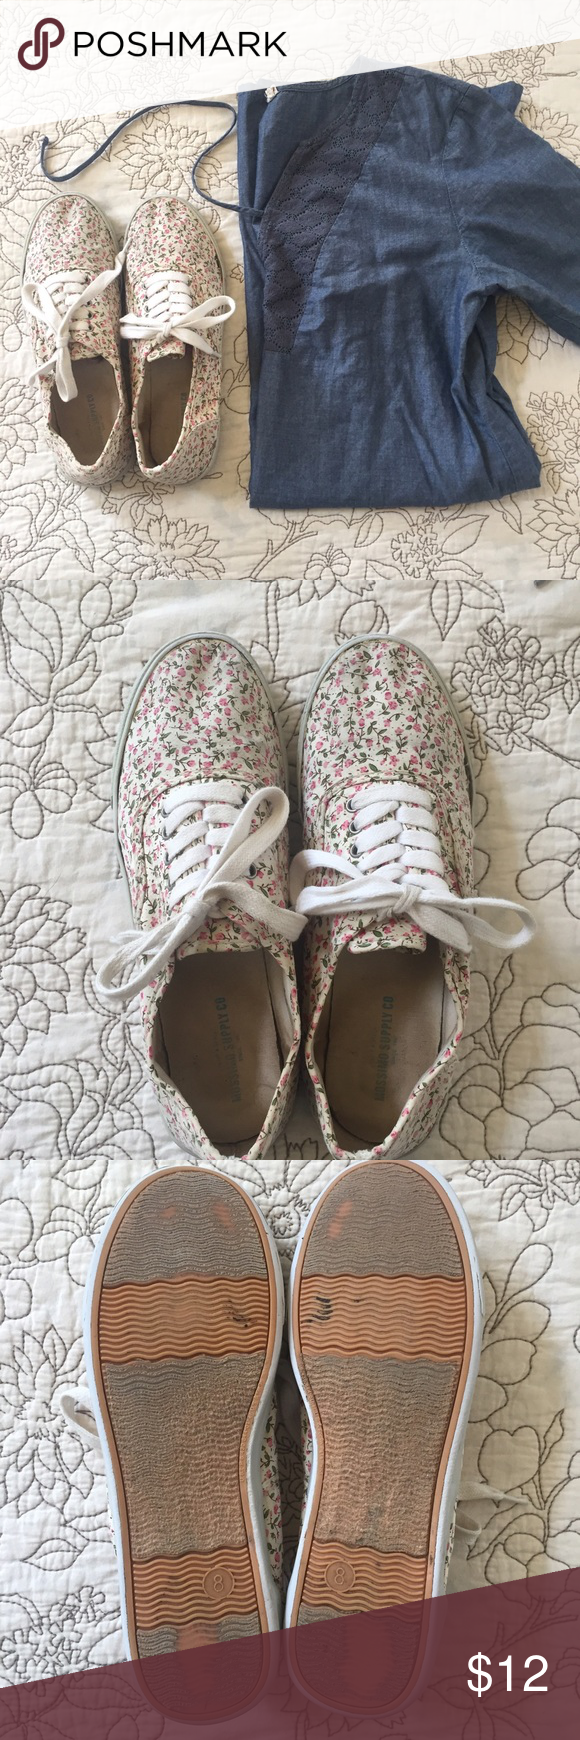 80735c55cc Mossimo Floral Lace-Up Shoes - 8 Super comfy cross between Keds and Vans